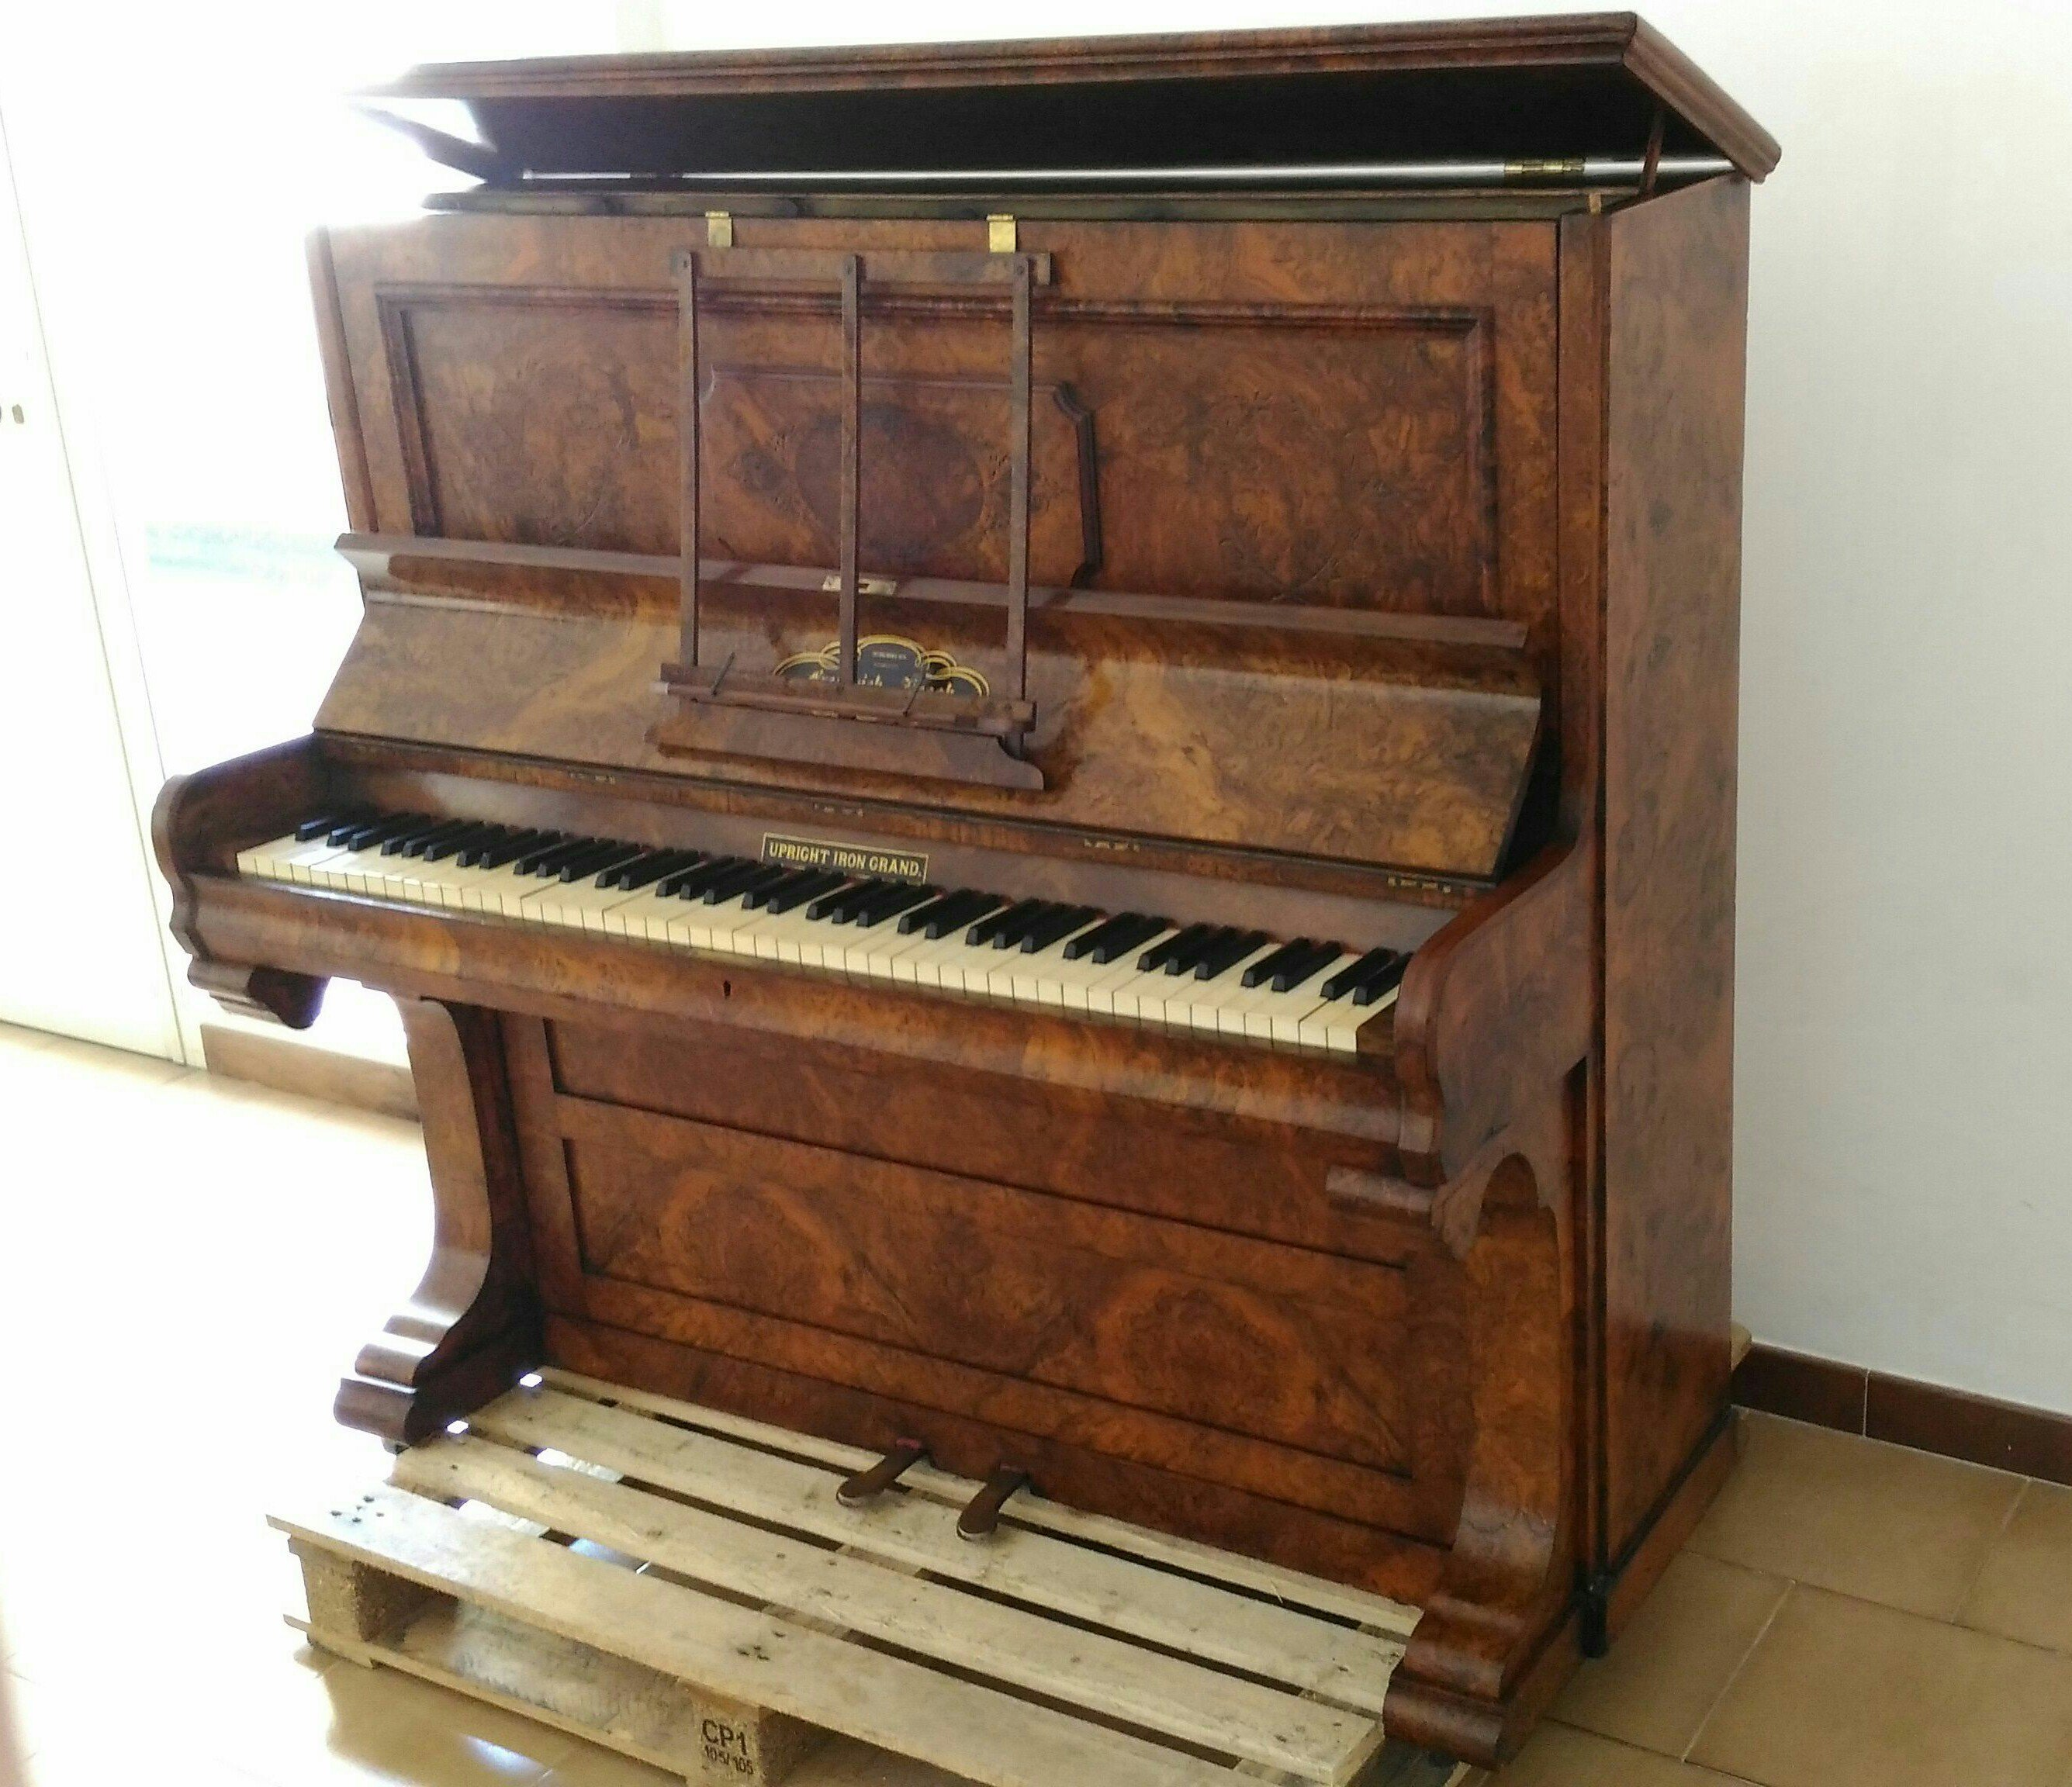 Upright Piano Frederick Reogh, 1870, London